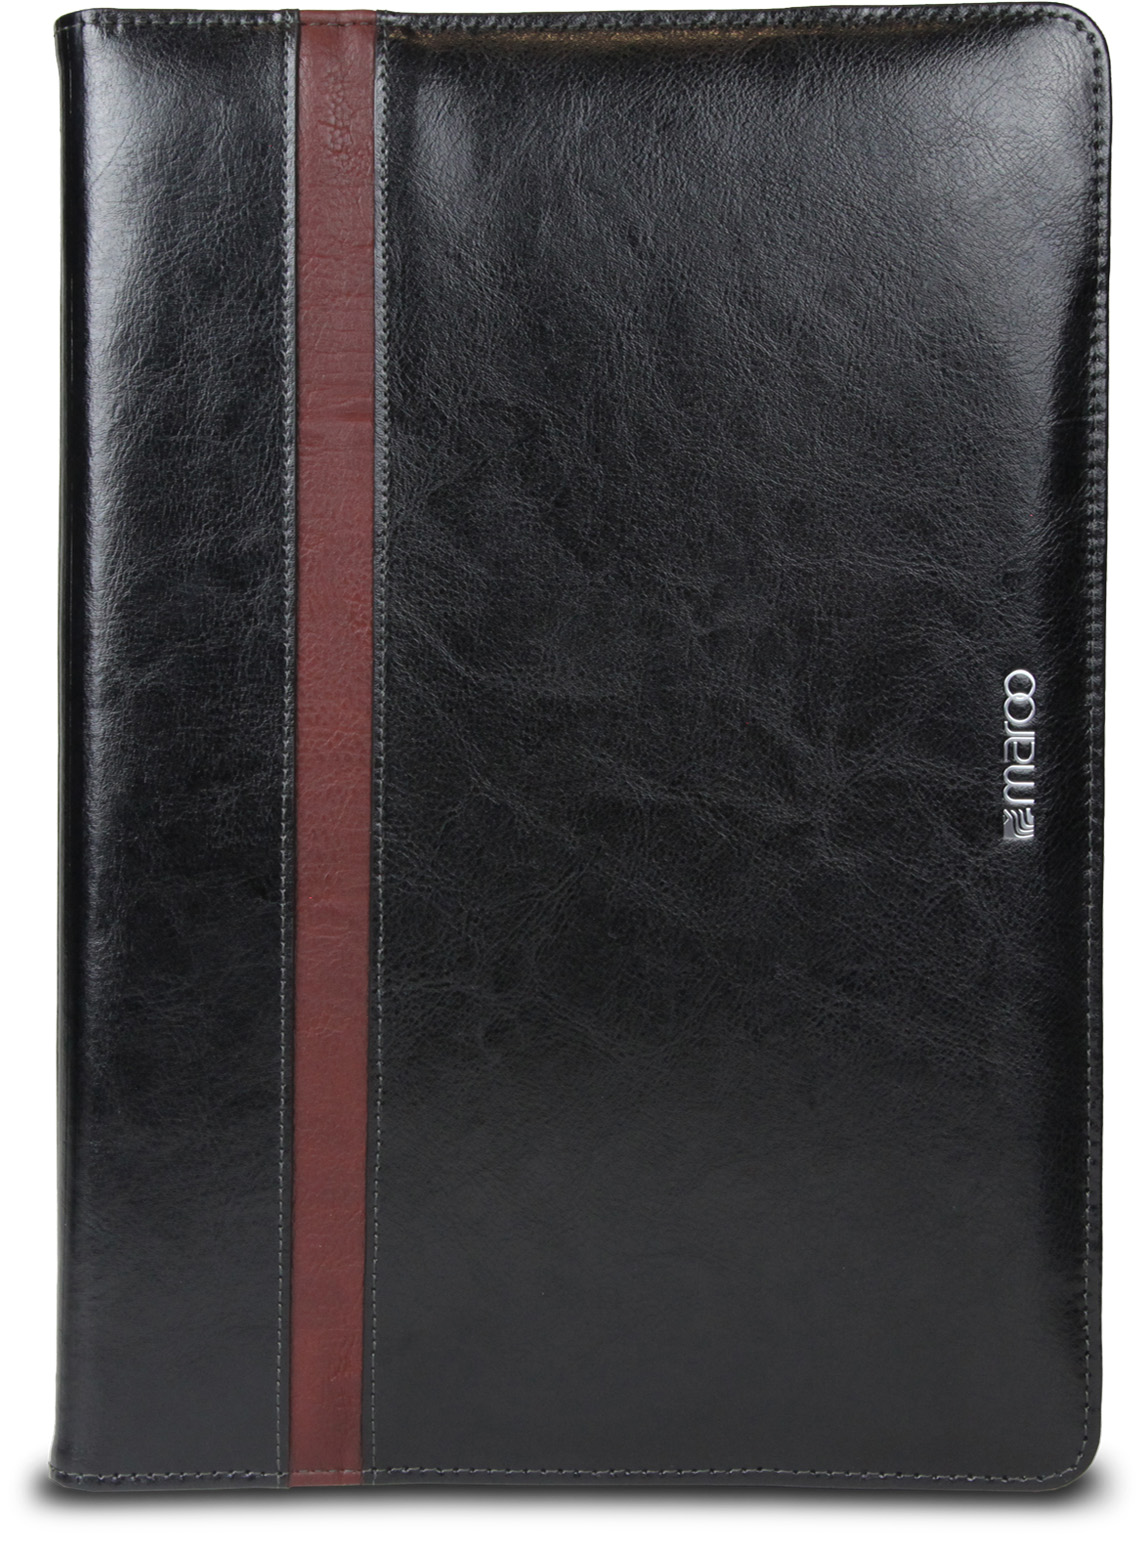 Maroo Executive Leather Folio voor Surface Pro (Obsidian zwart)